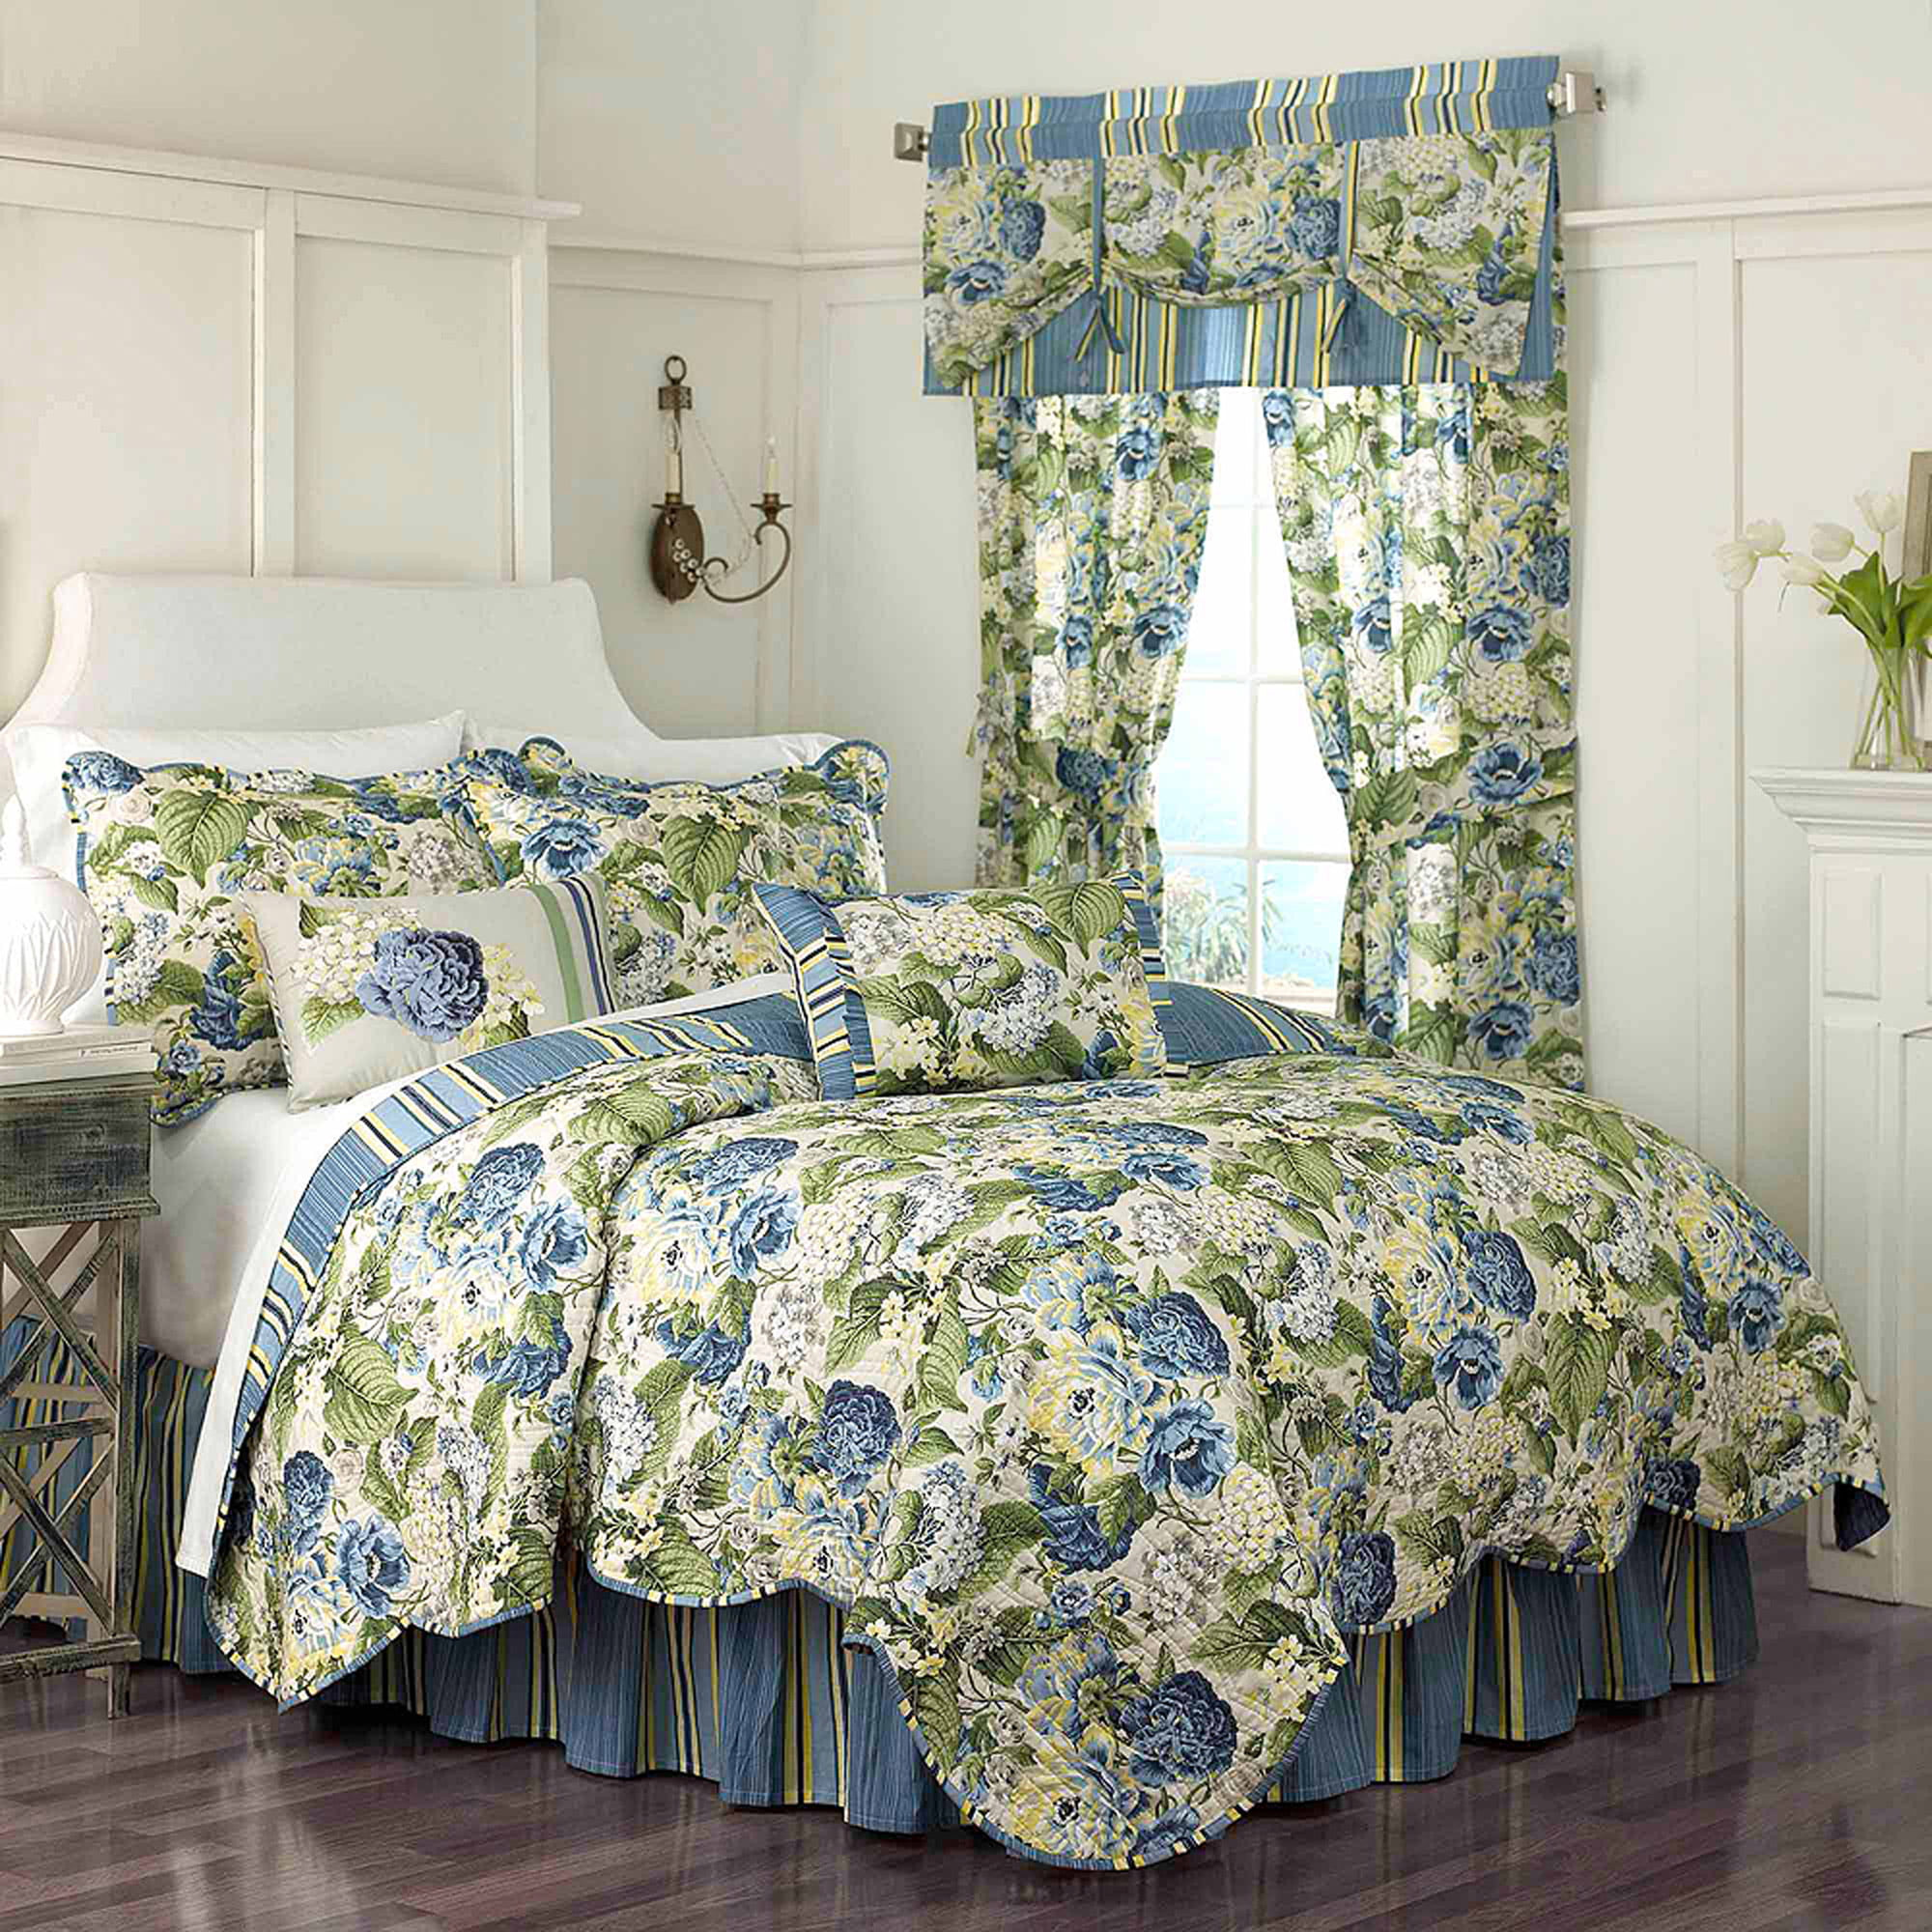 Floral Flourish Bedding Quilt Set   Walmart.com